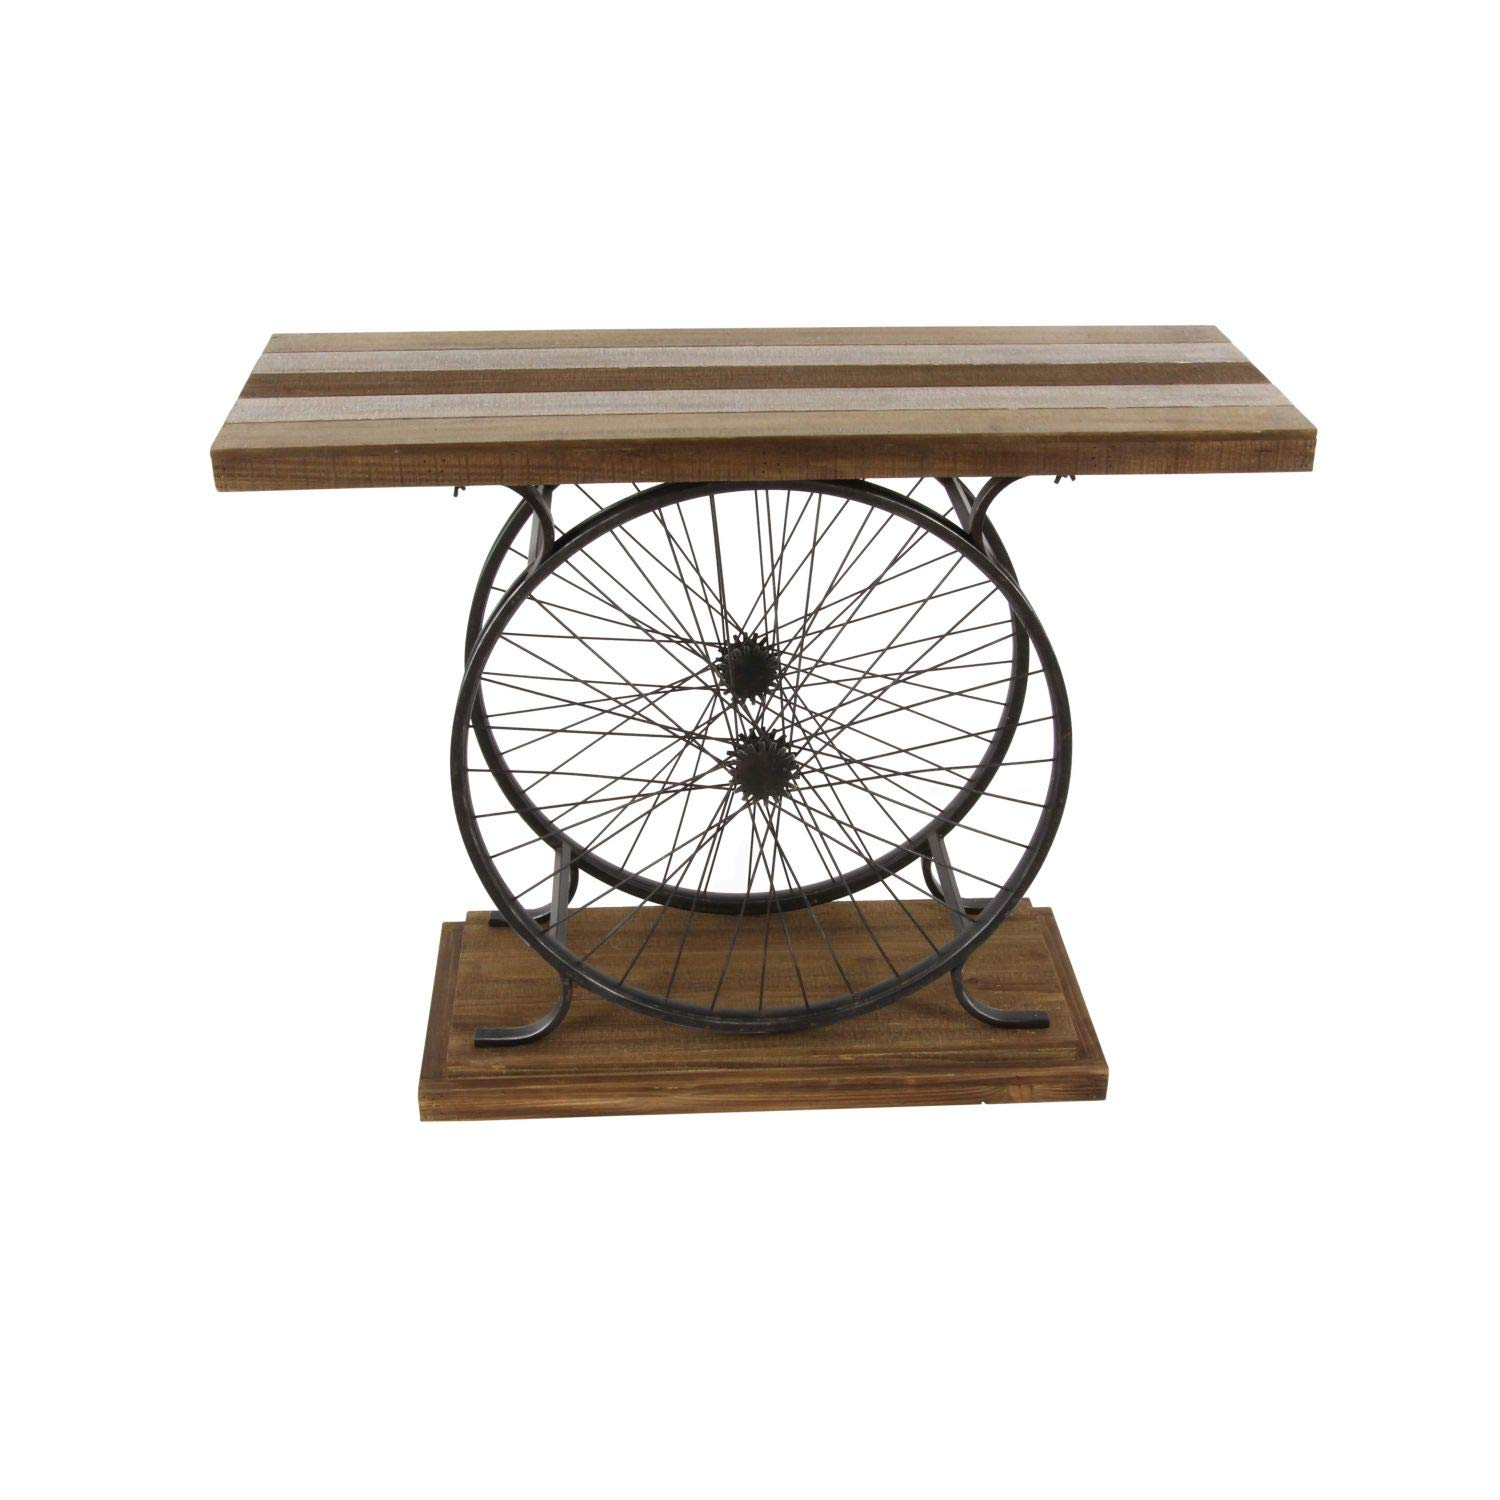 Deco 79 Metal and Wood Wheel Console, Brown Black